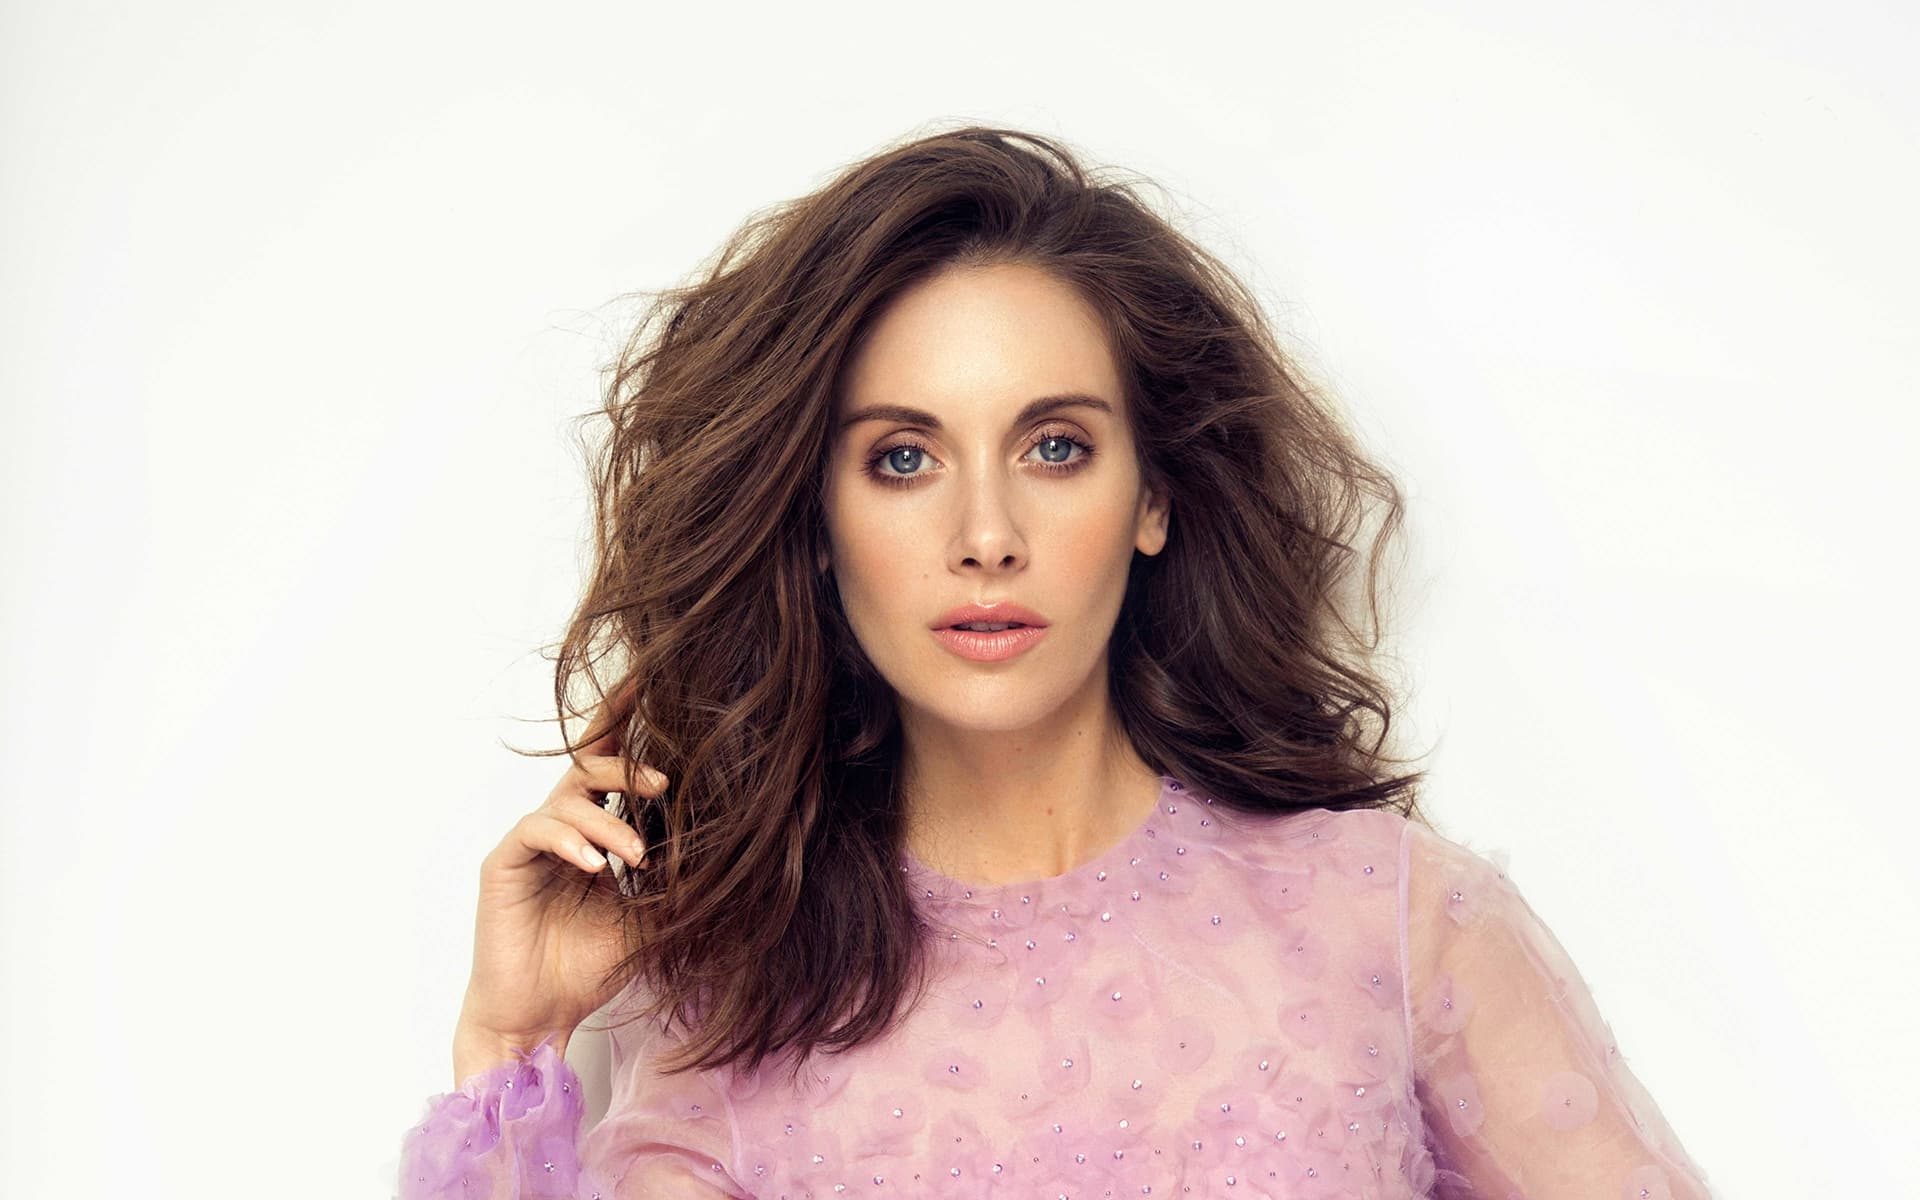 17 Alison Brie Wallpapers High Quality Resolution Download